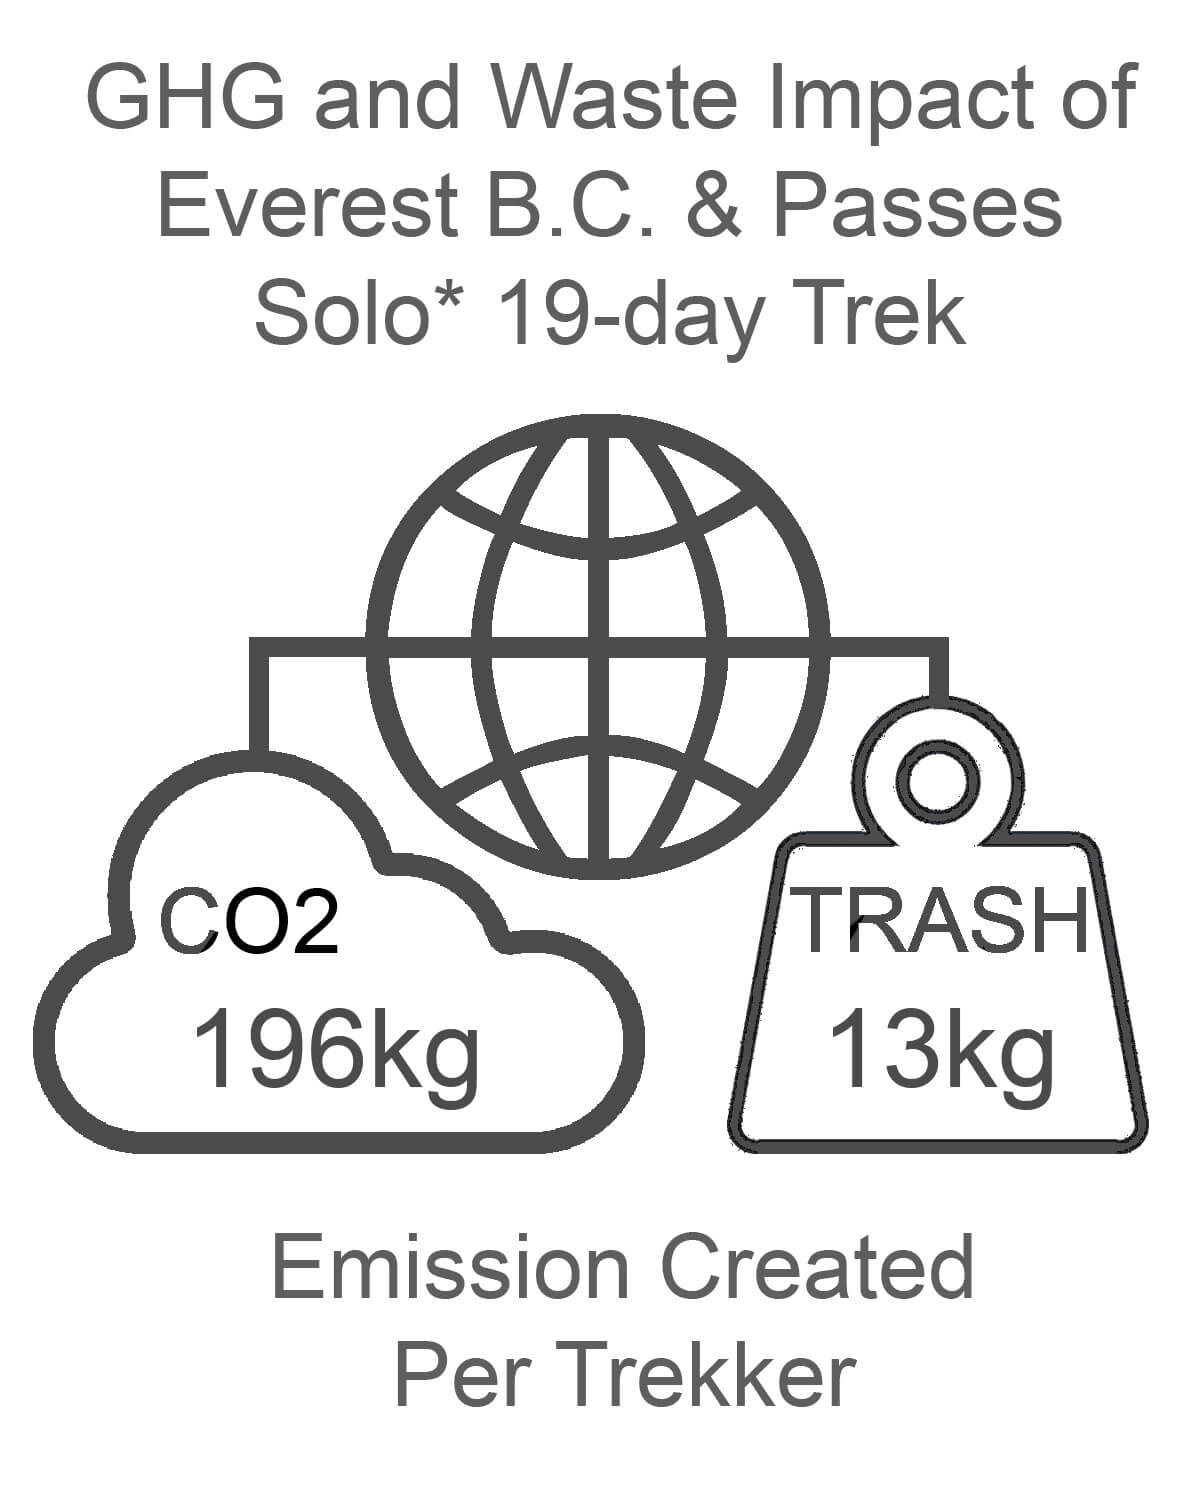 Everest Base Camp and Passes GHG and Waste Impact SOLO